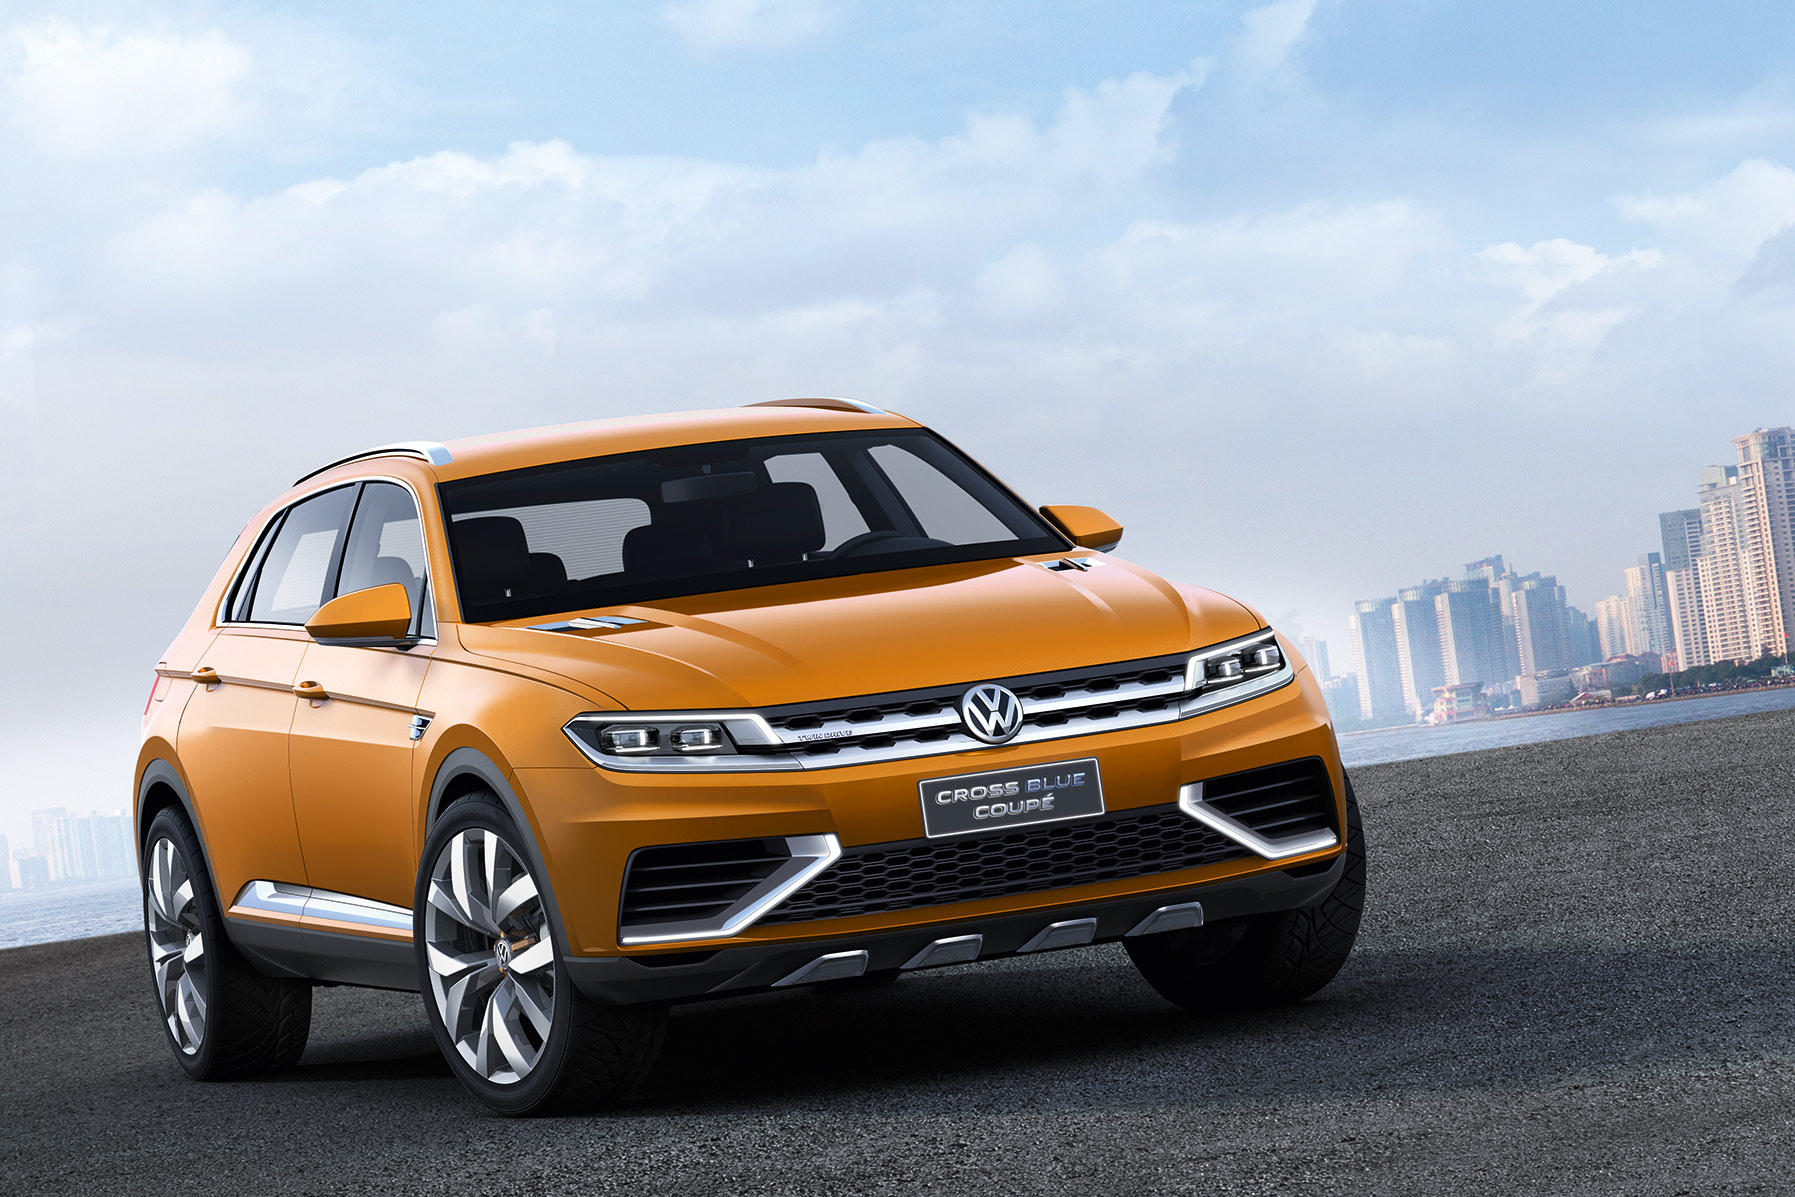 volkswagen-crossblue-coupe-concept-012